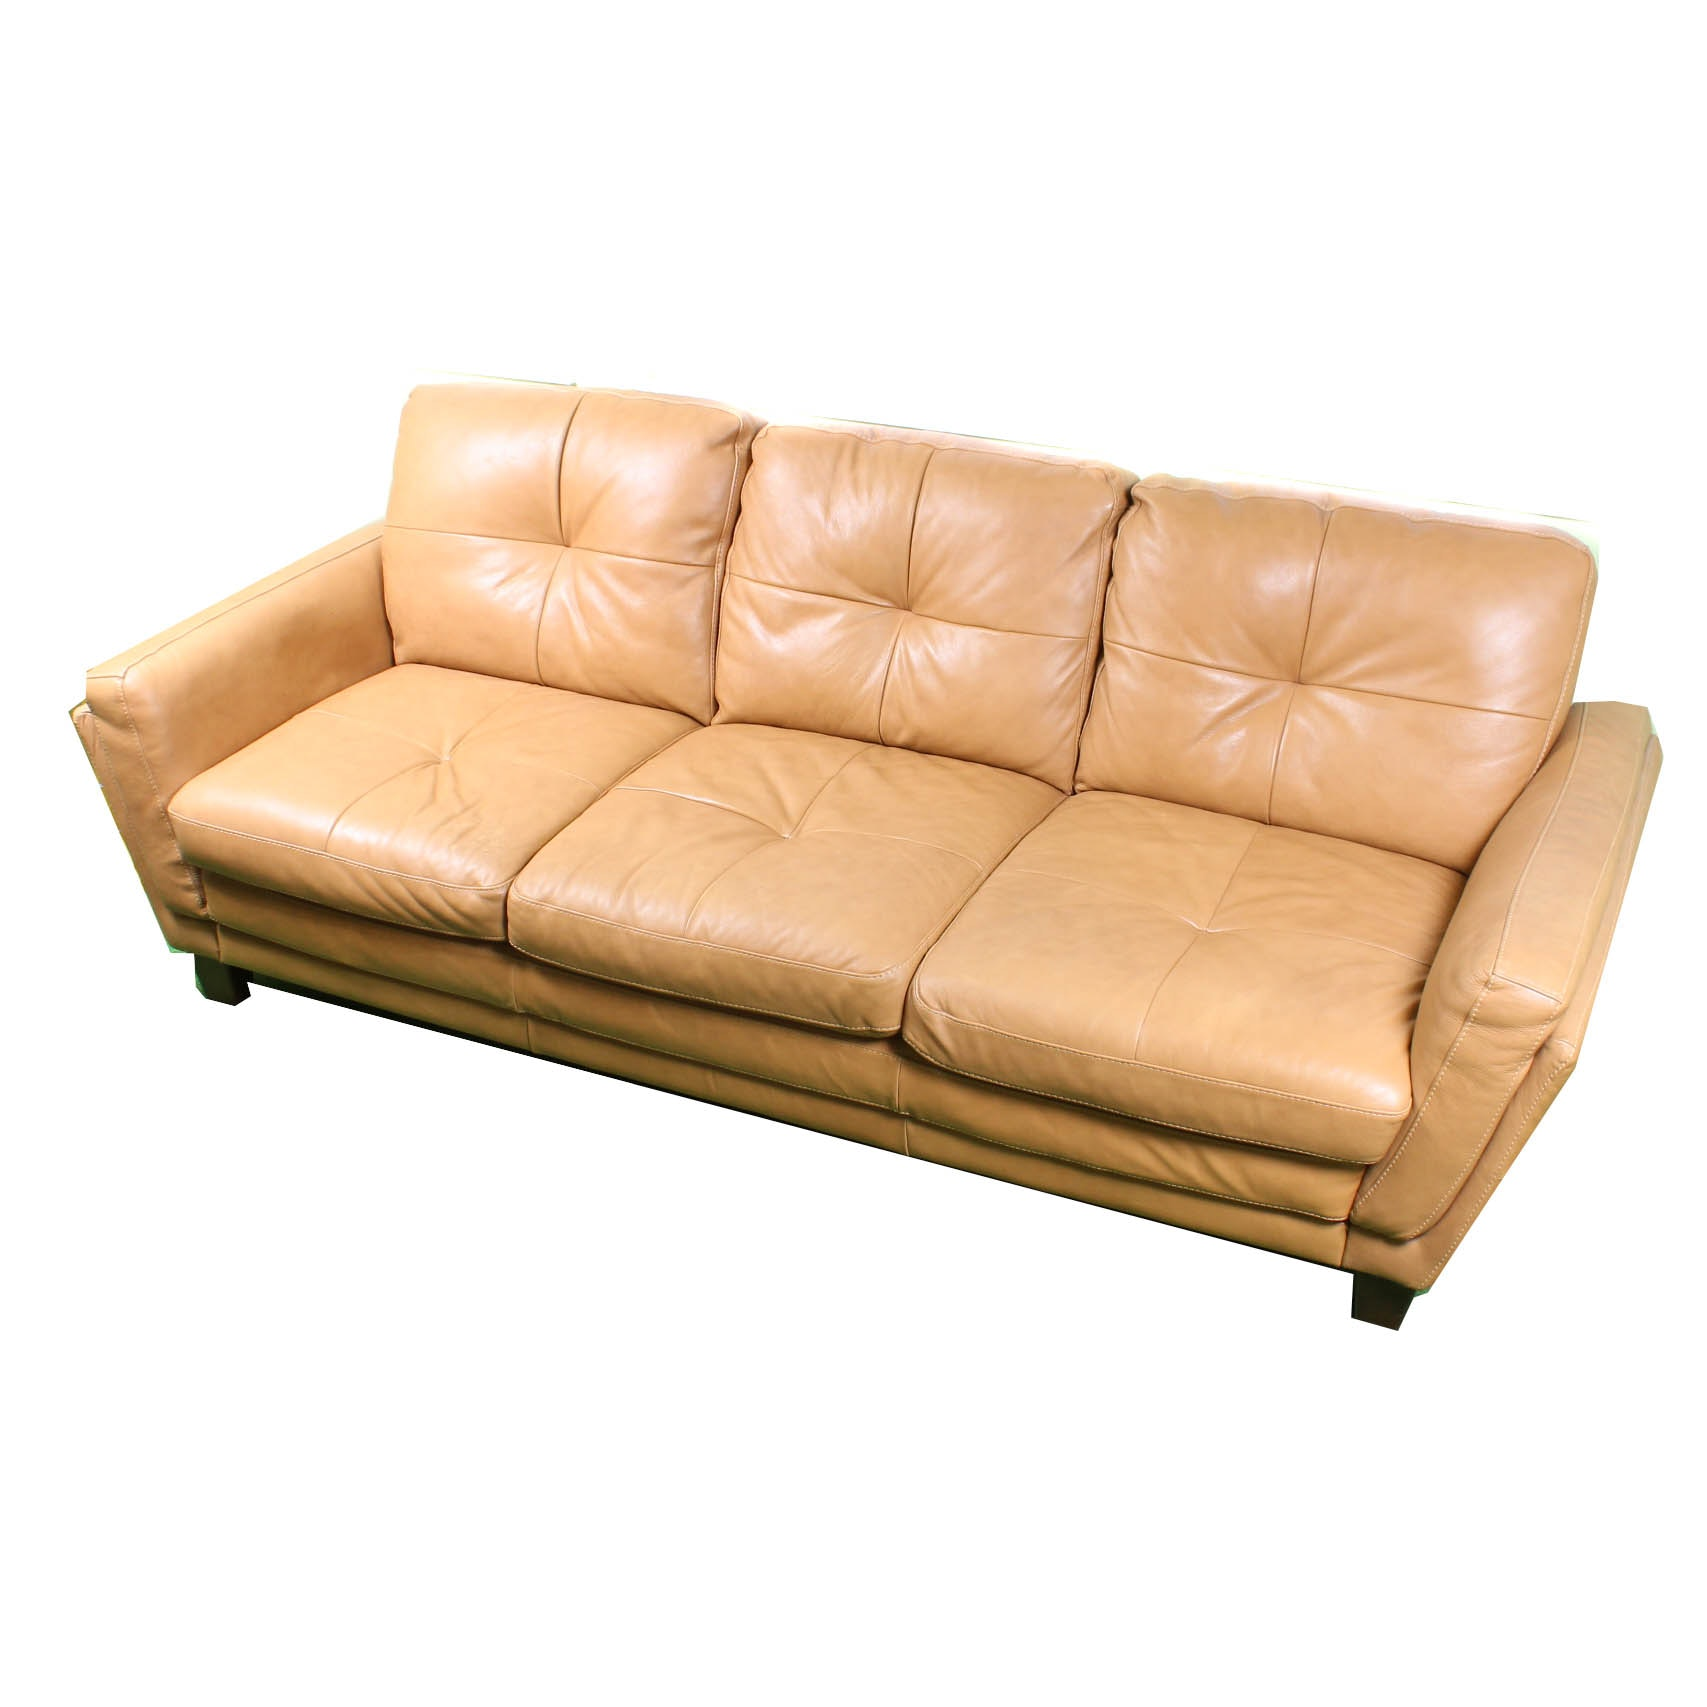 Italian Leather Sofa By Soft Line S.P.A. ...